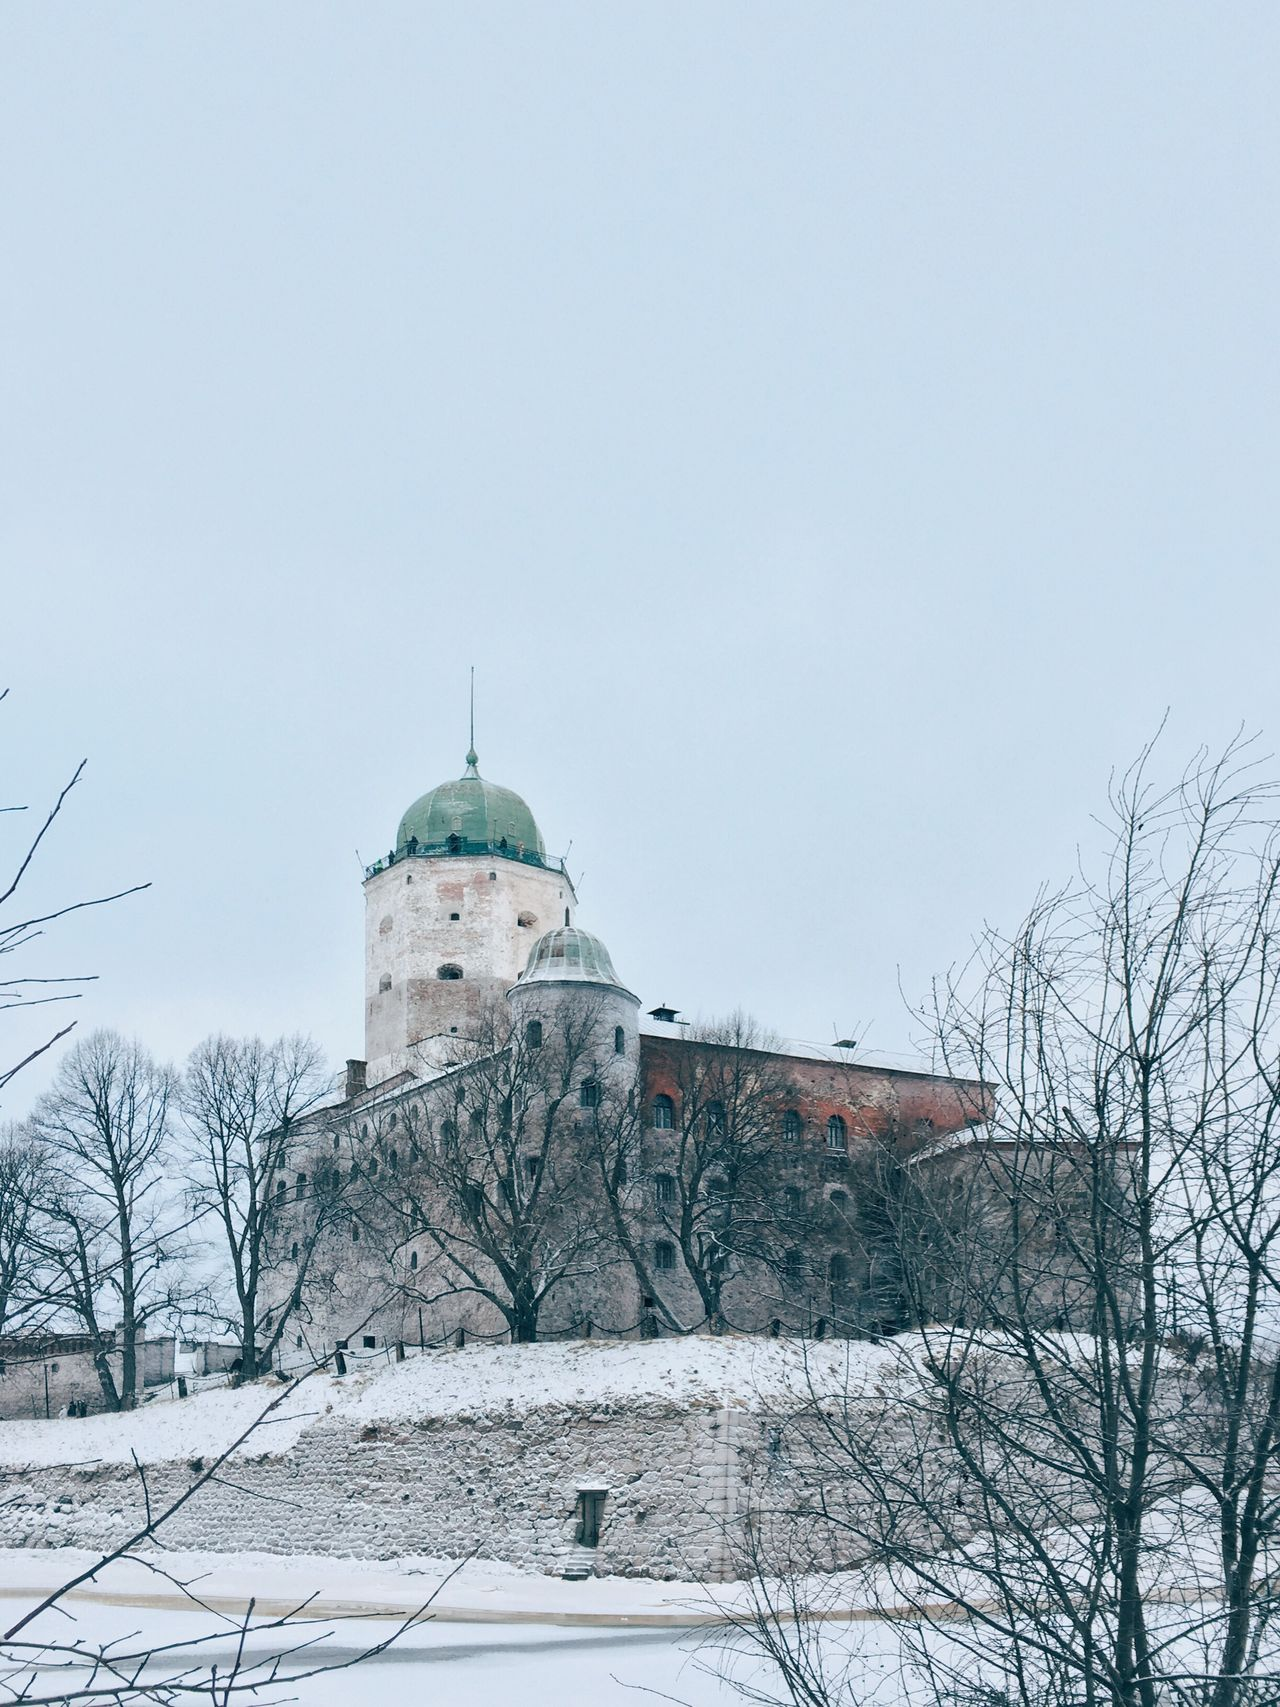 Architecture Winter Building Exterior Snow Built Structure Cold Temperature Bare Tree No People Tree Nature Outdoors Place Of Worship Day Beauty In Nature Sky Castle Russia Vyborg Miles Away